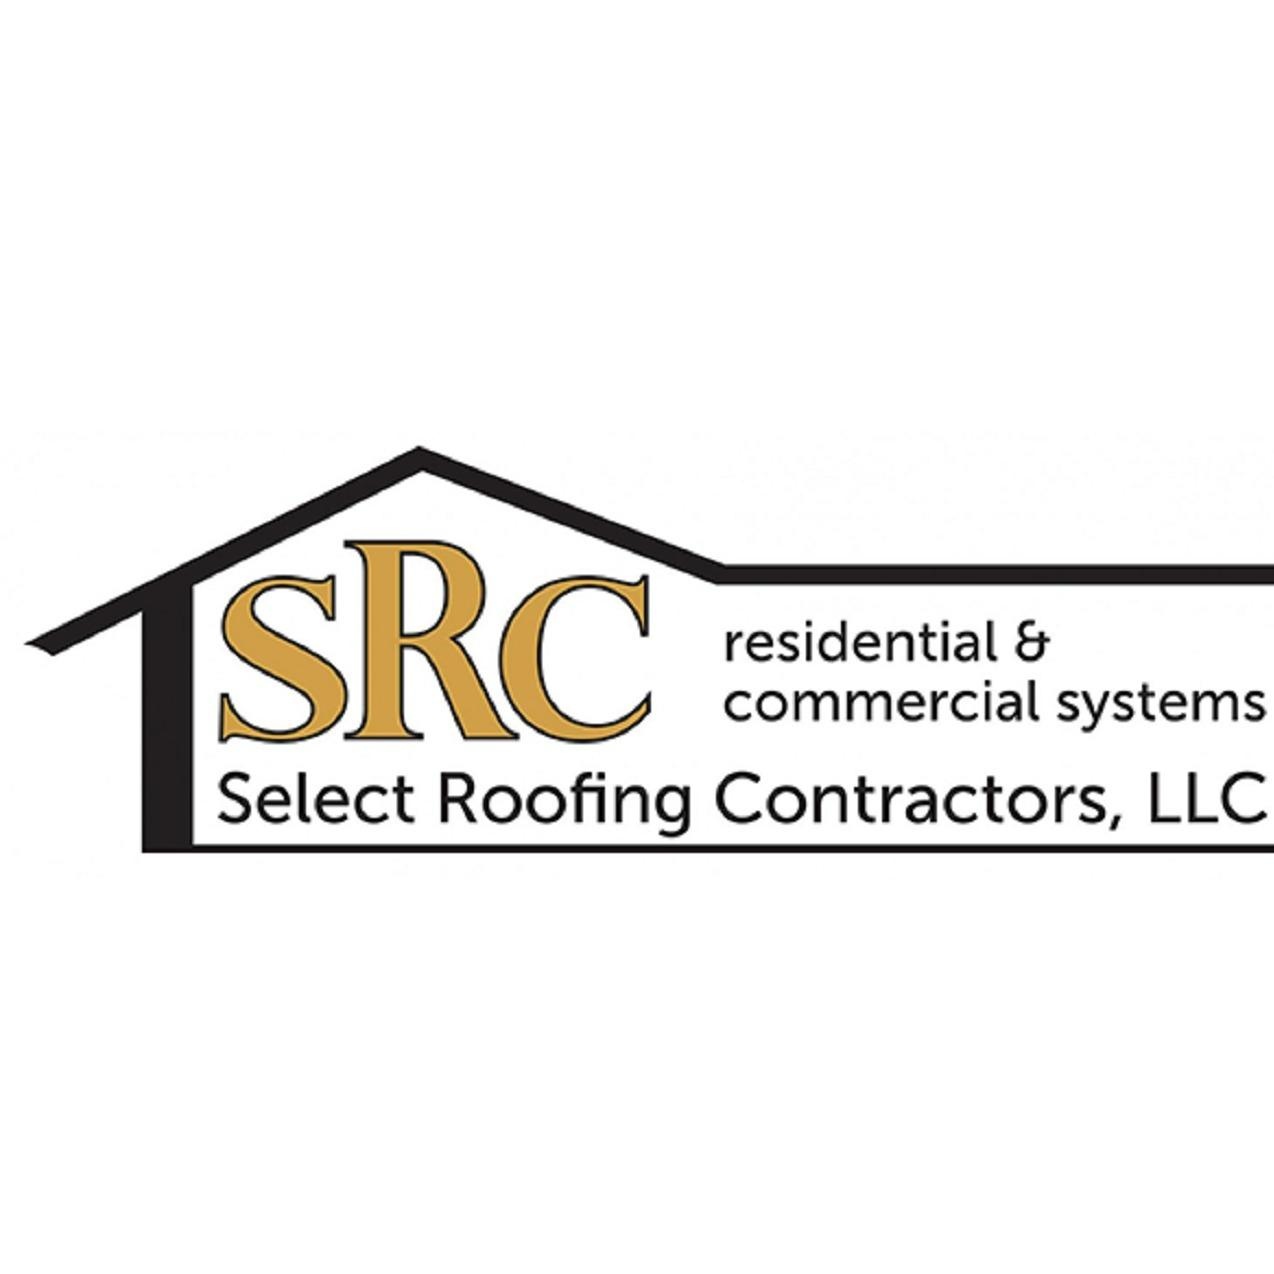 Select Roofing Contractors, LLC image 3